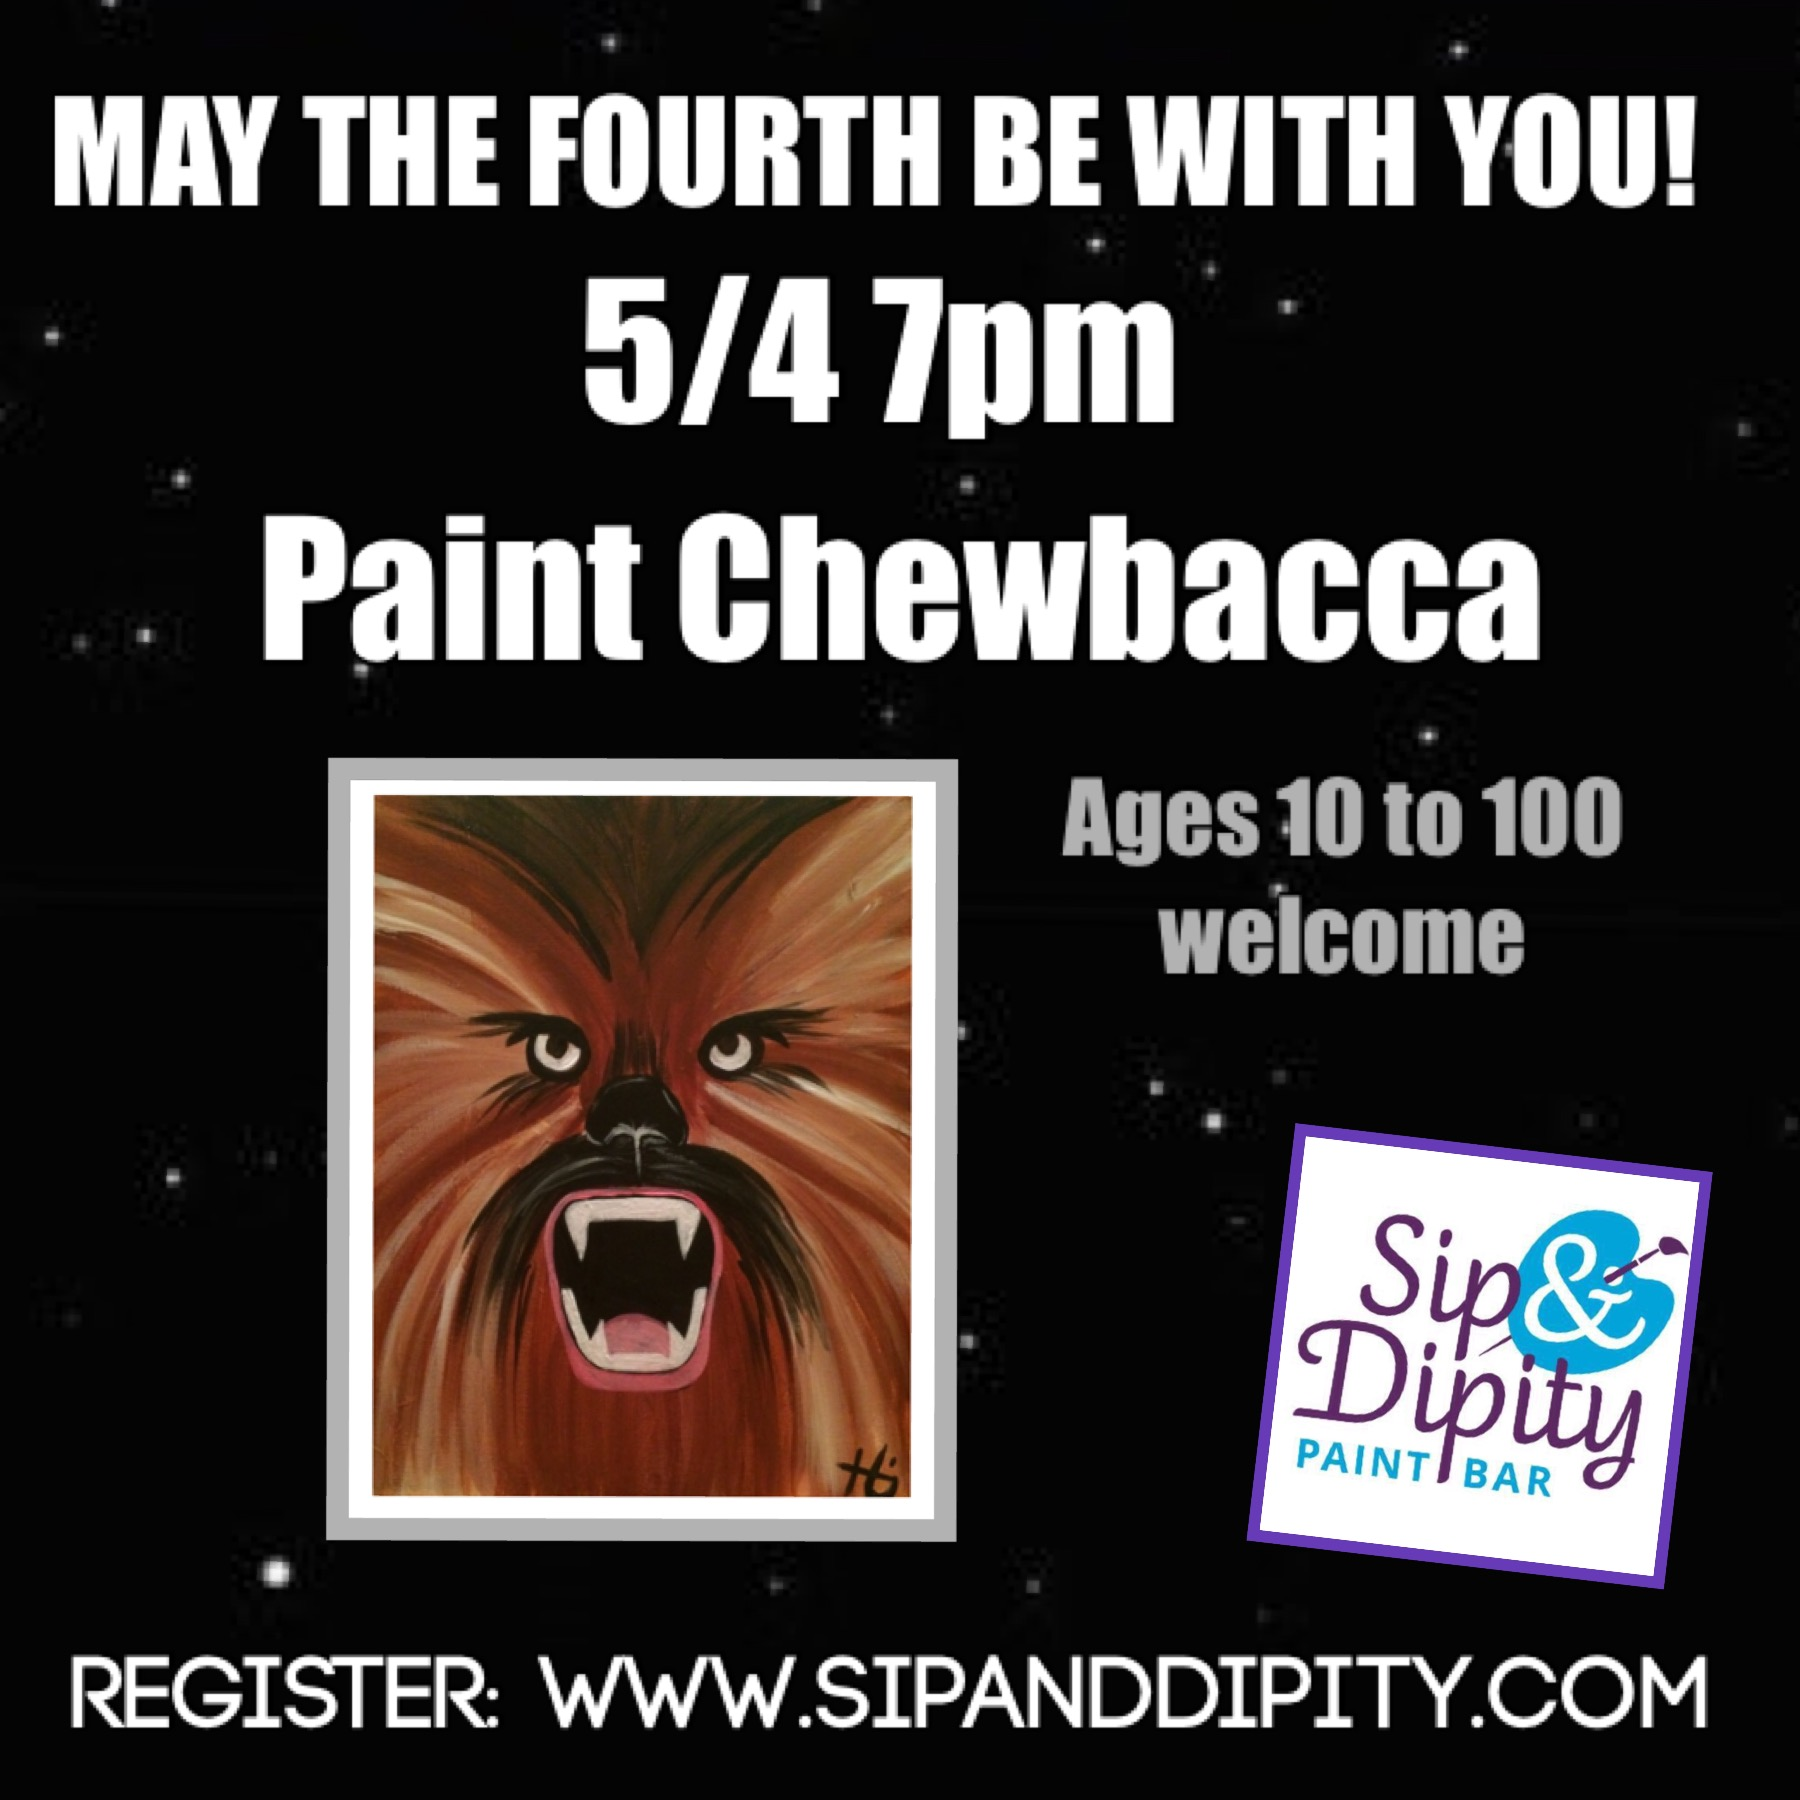 STAR WARS FAMILY PAINT PARTY